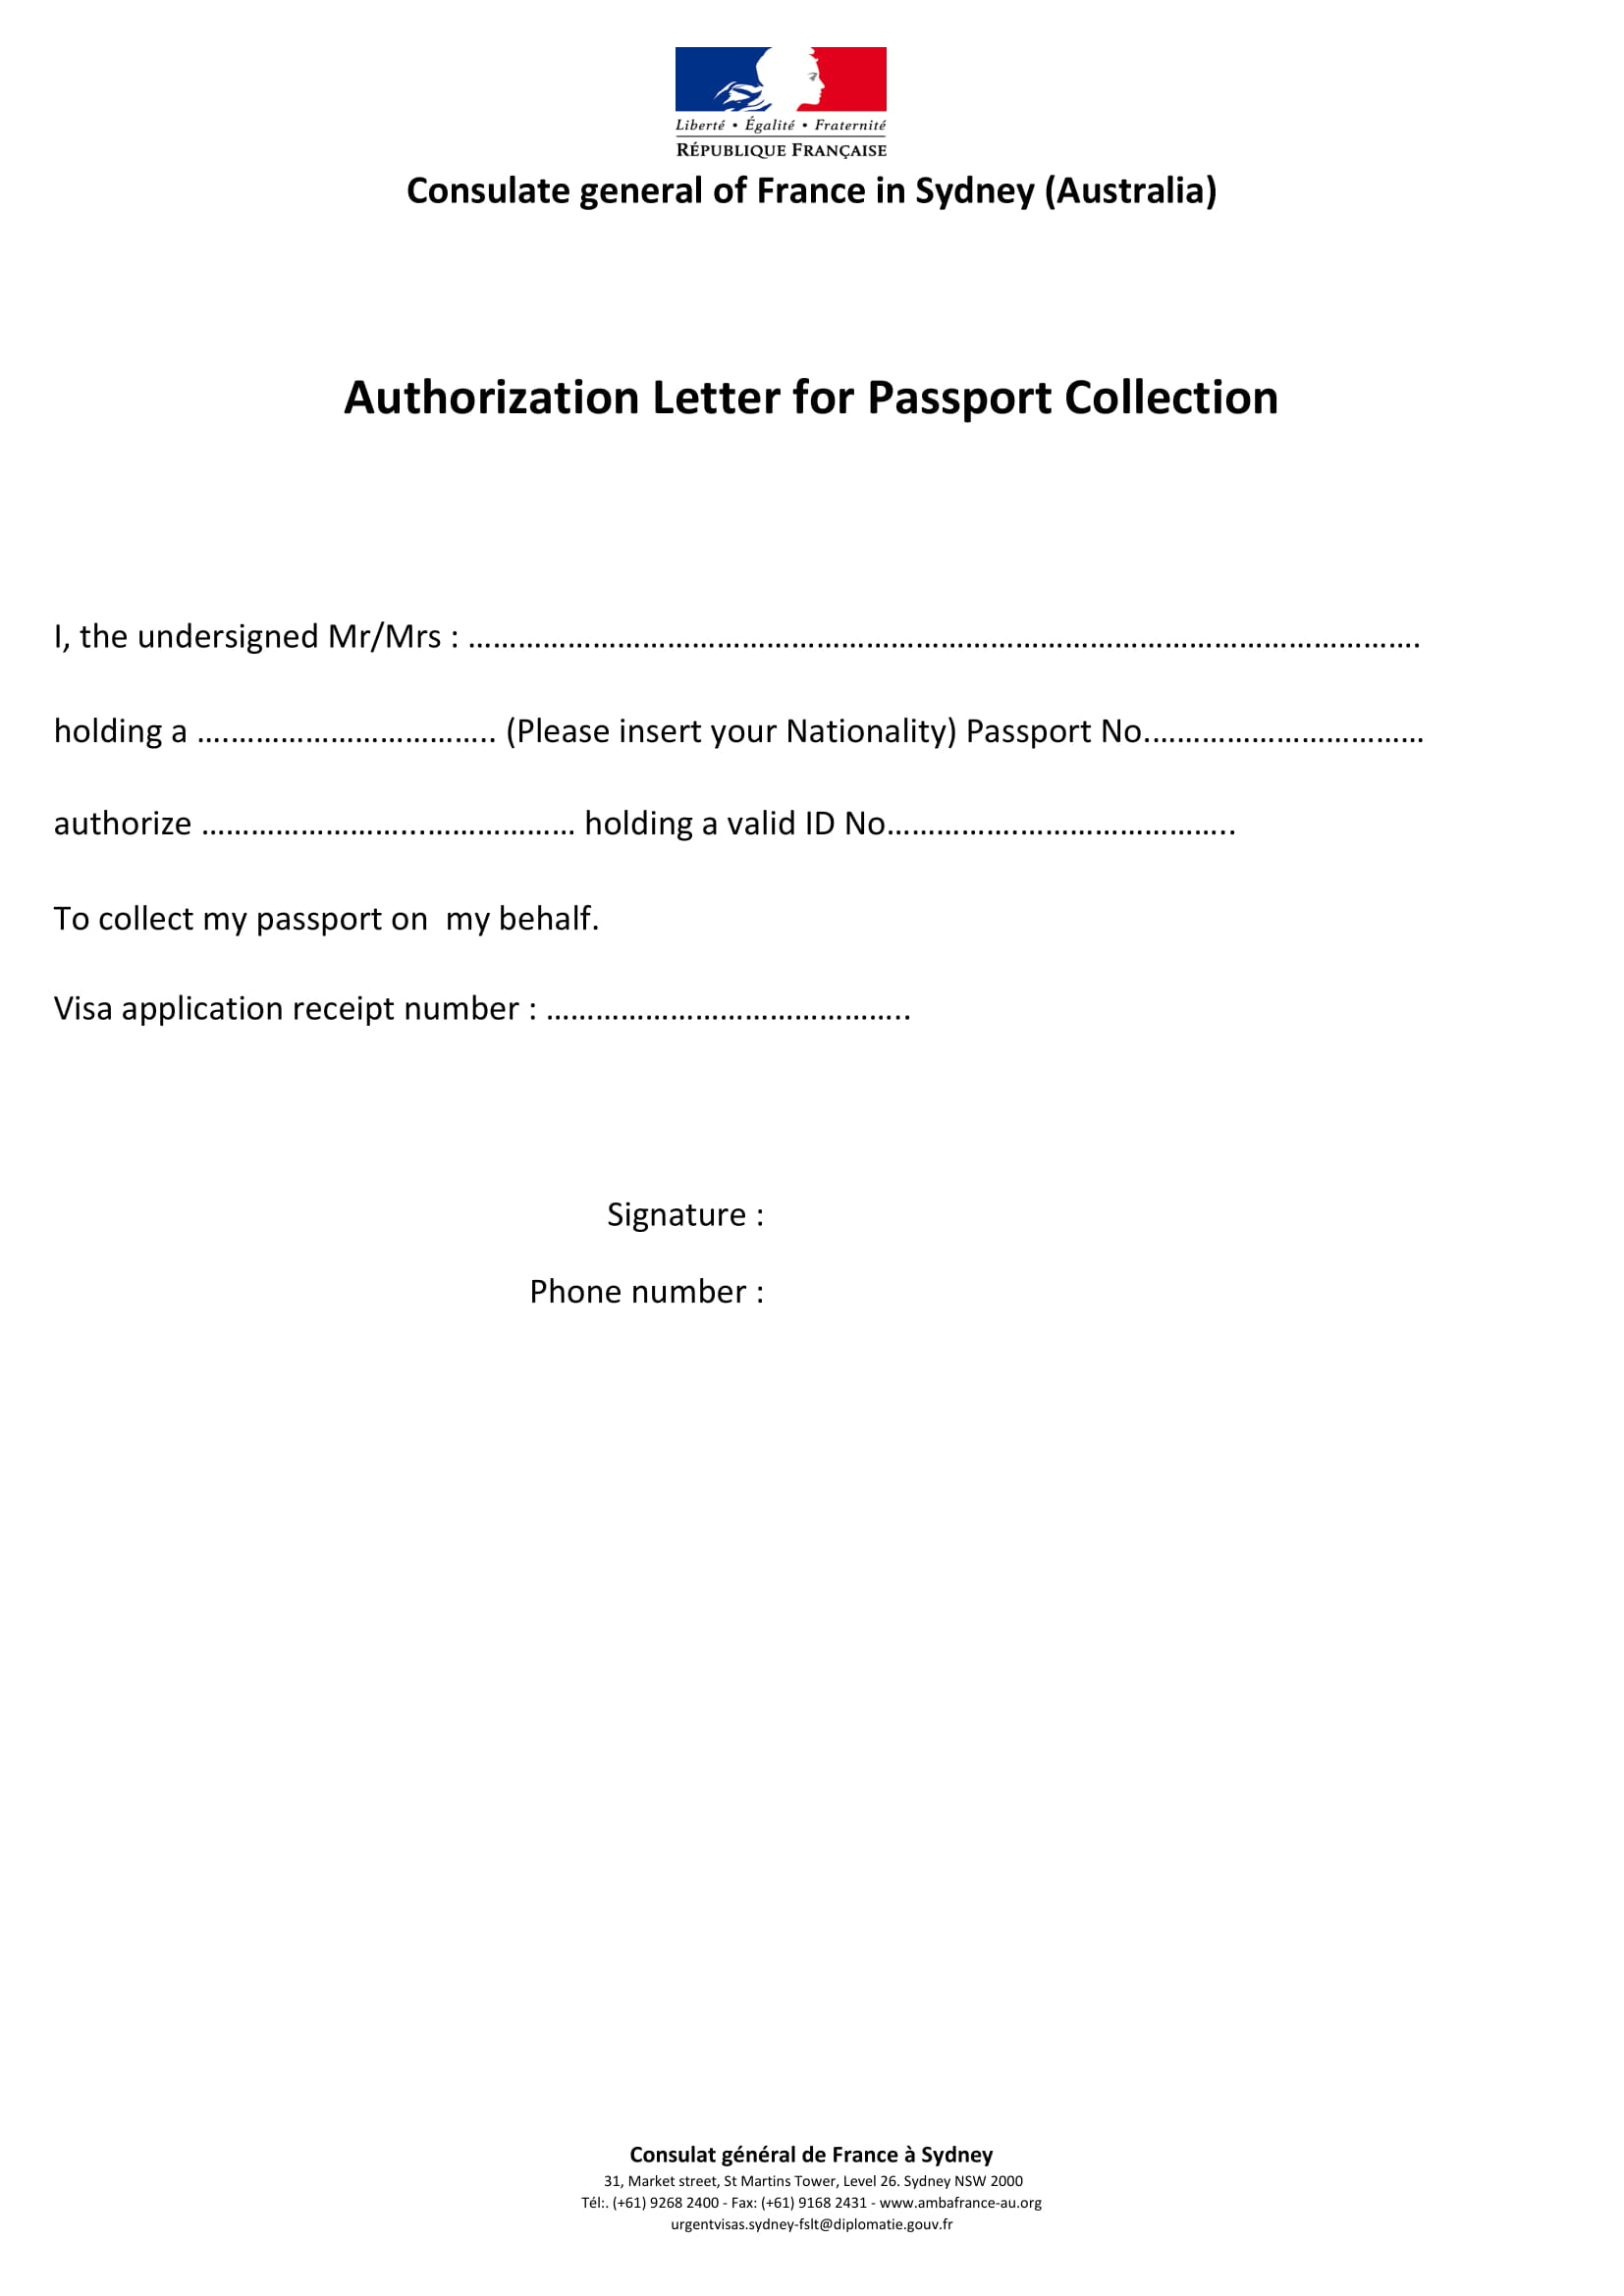 letter of authorization examples letter of authorization singtel 17 printable authorisation 18089 | Authorization for Passport Collection Example